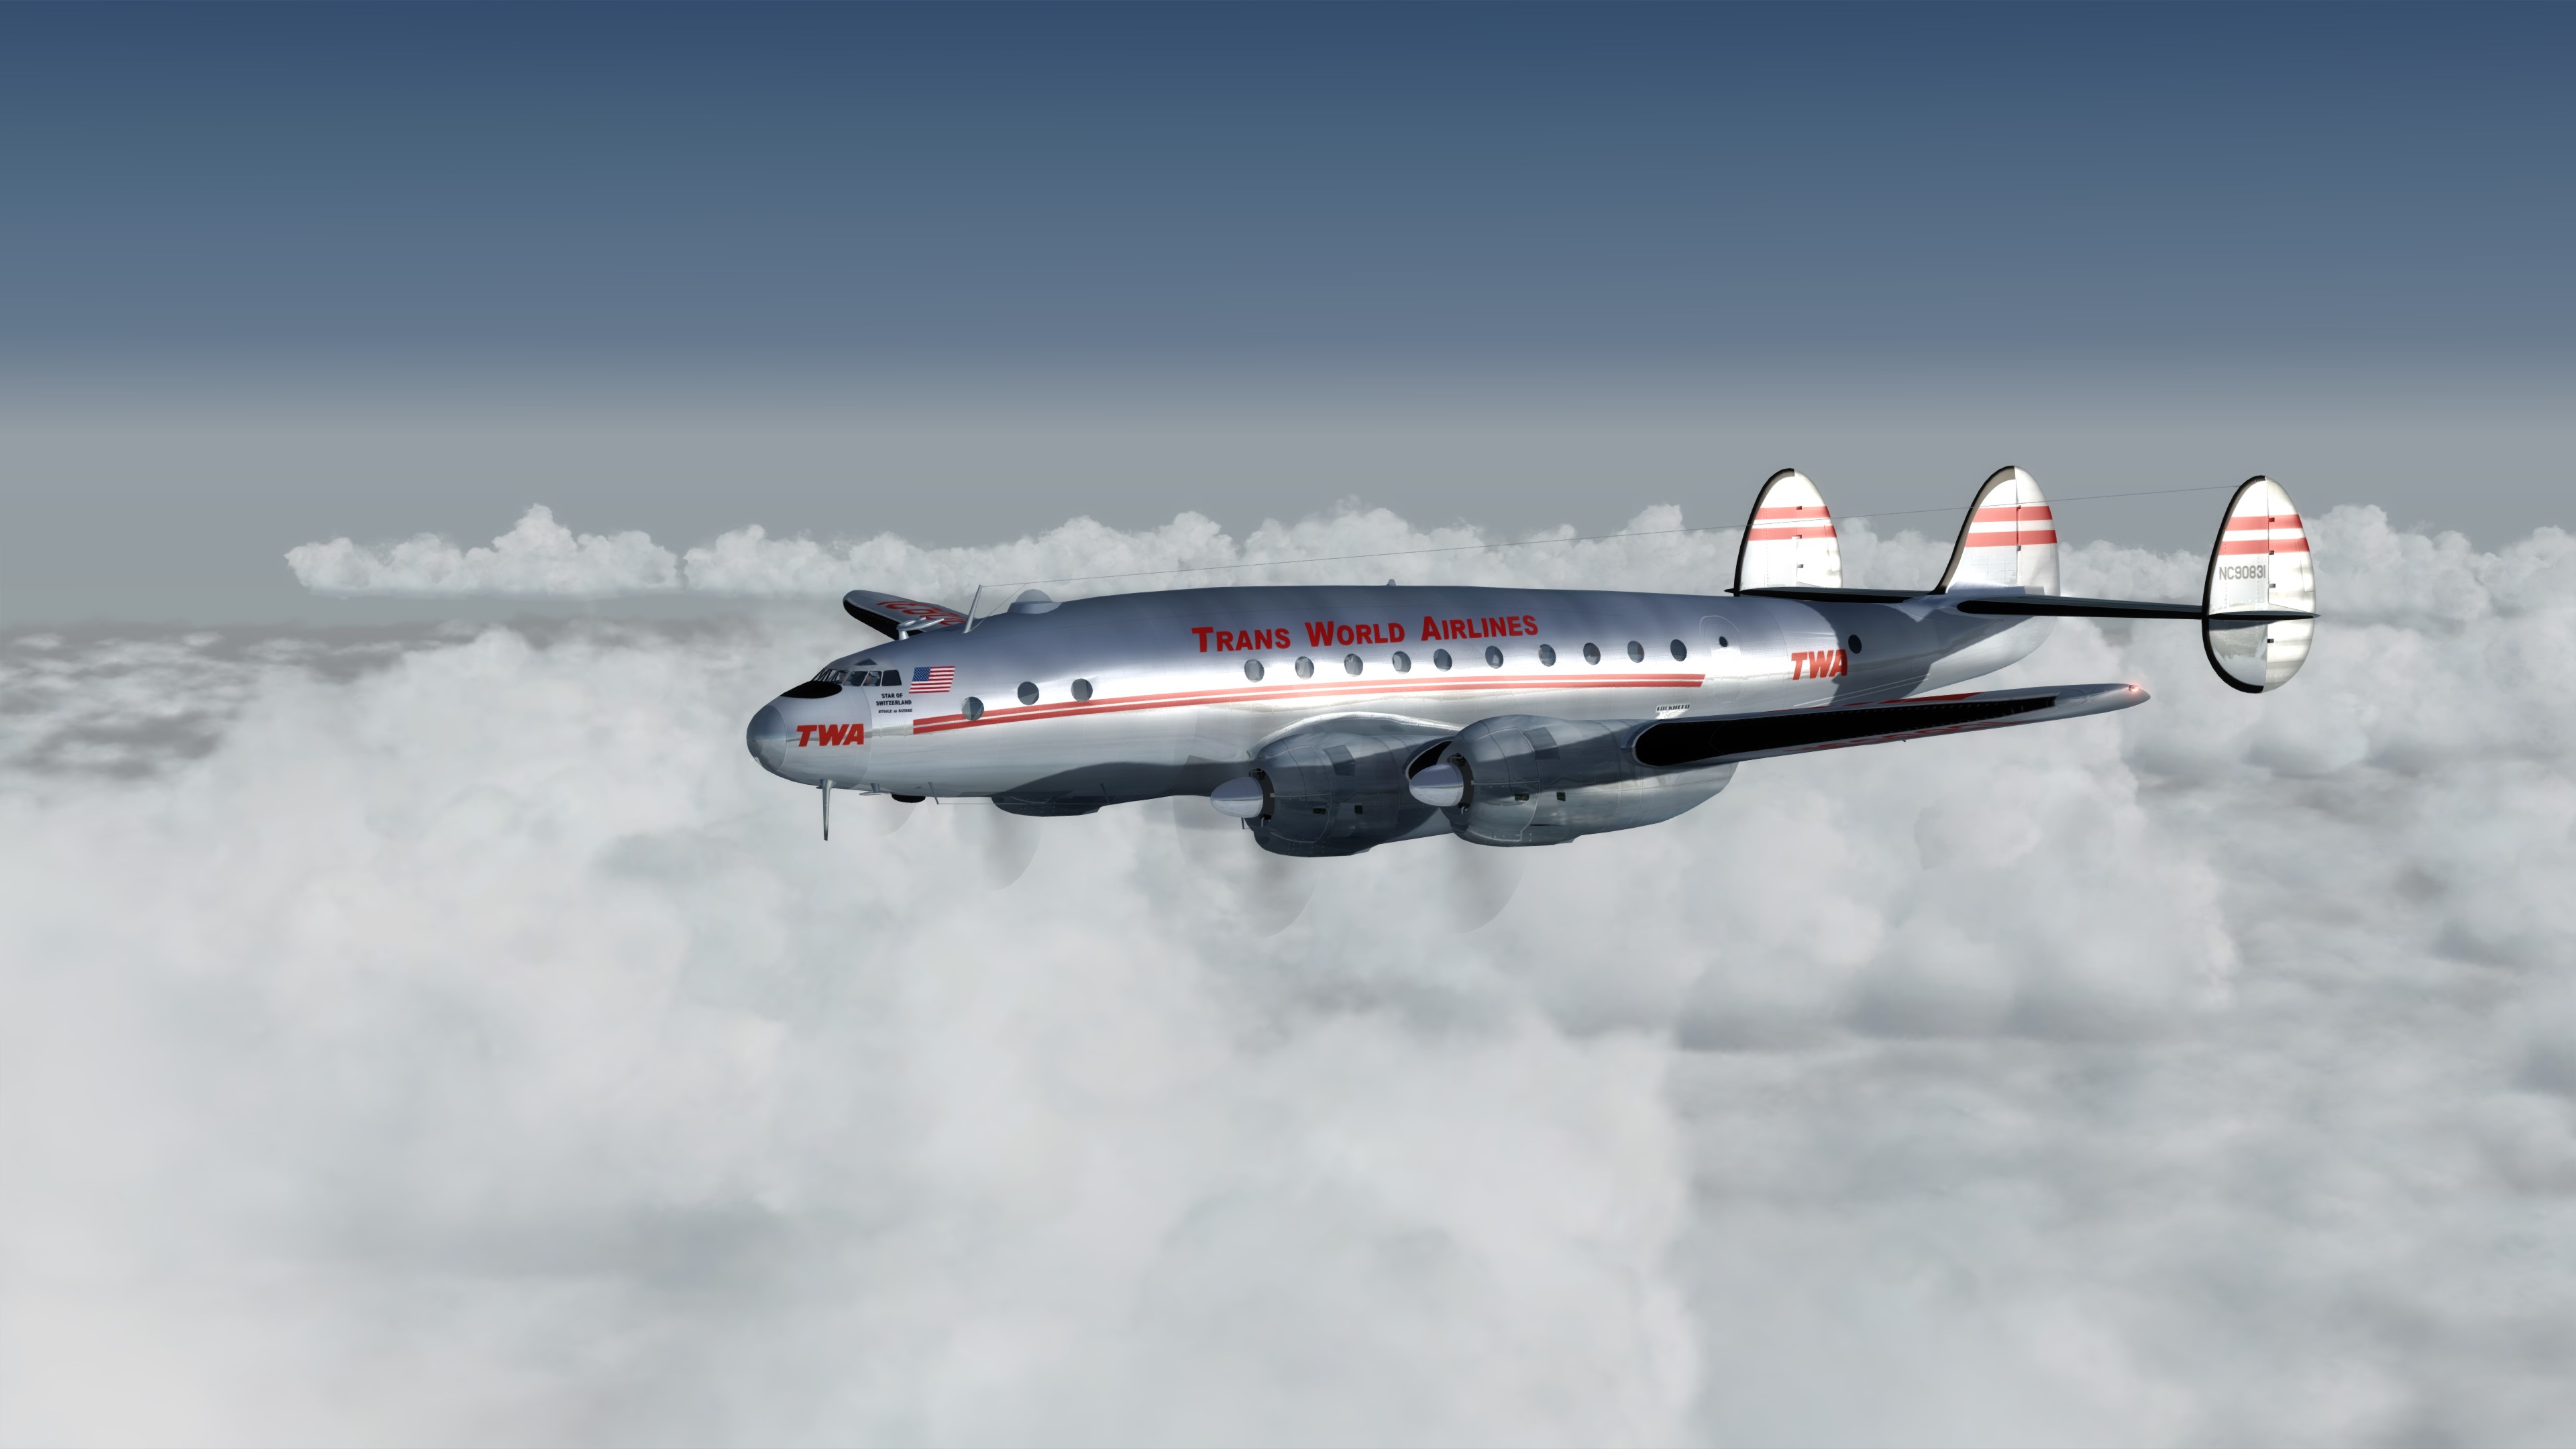 Lockheed L049 Constellation